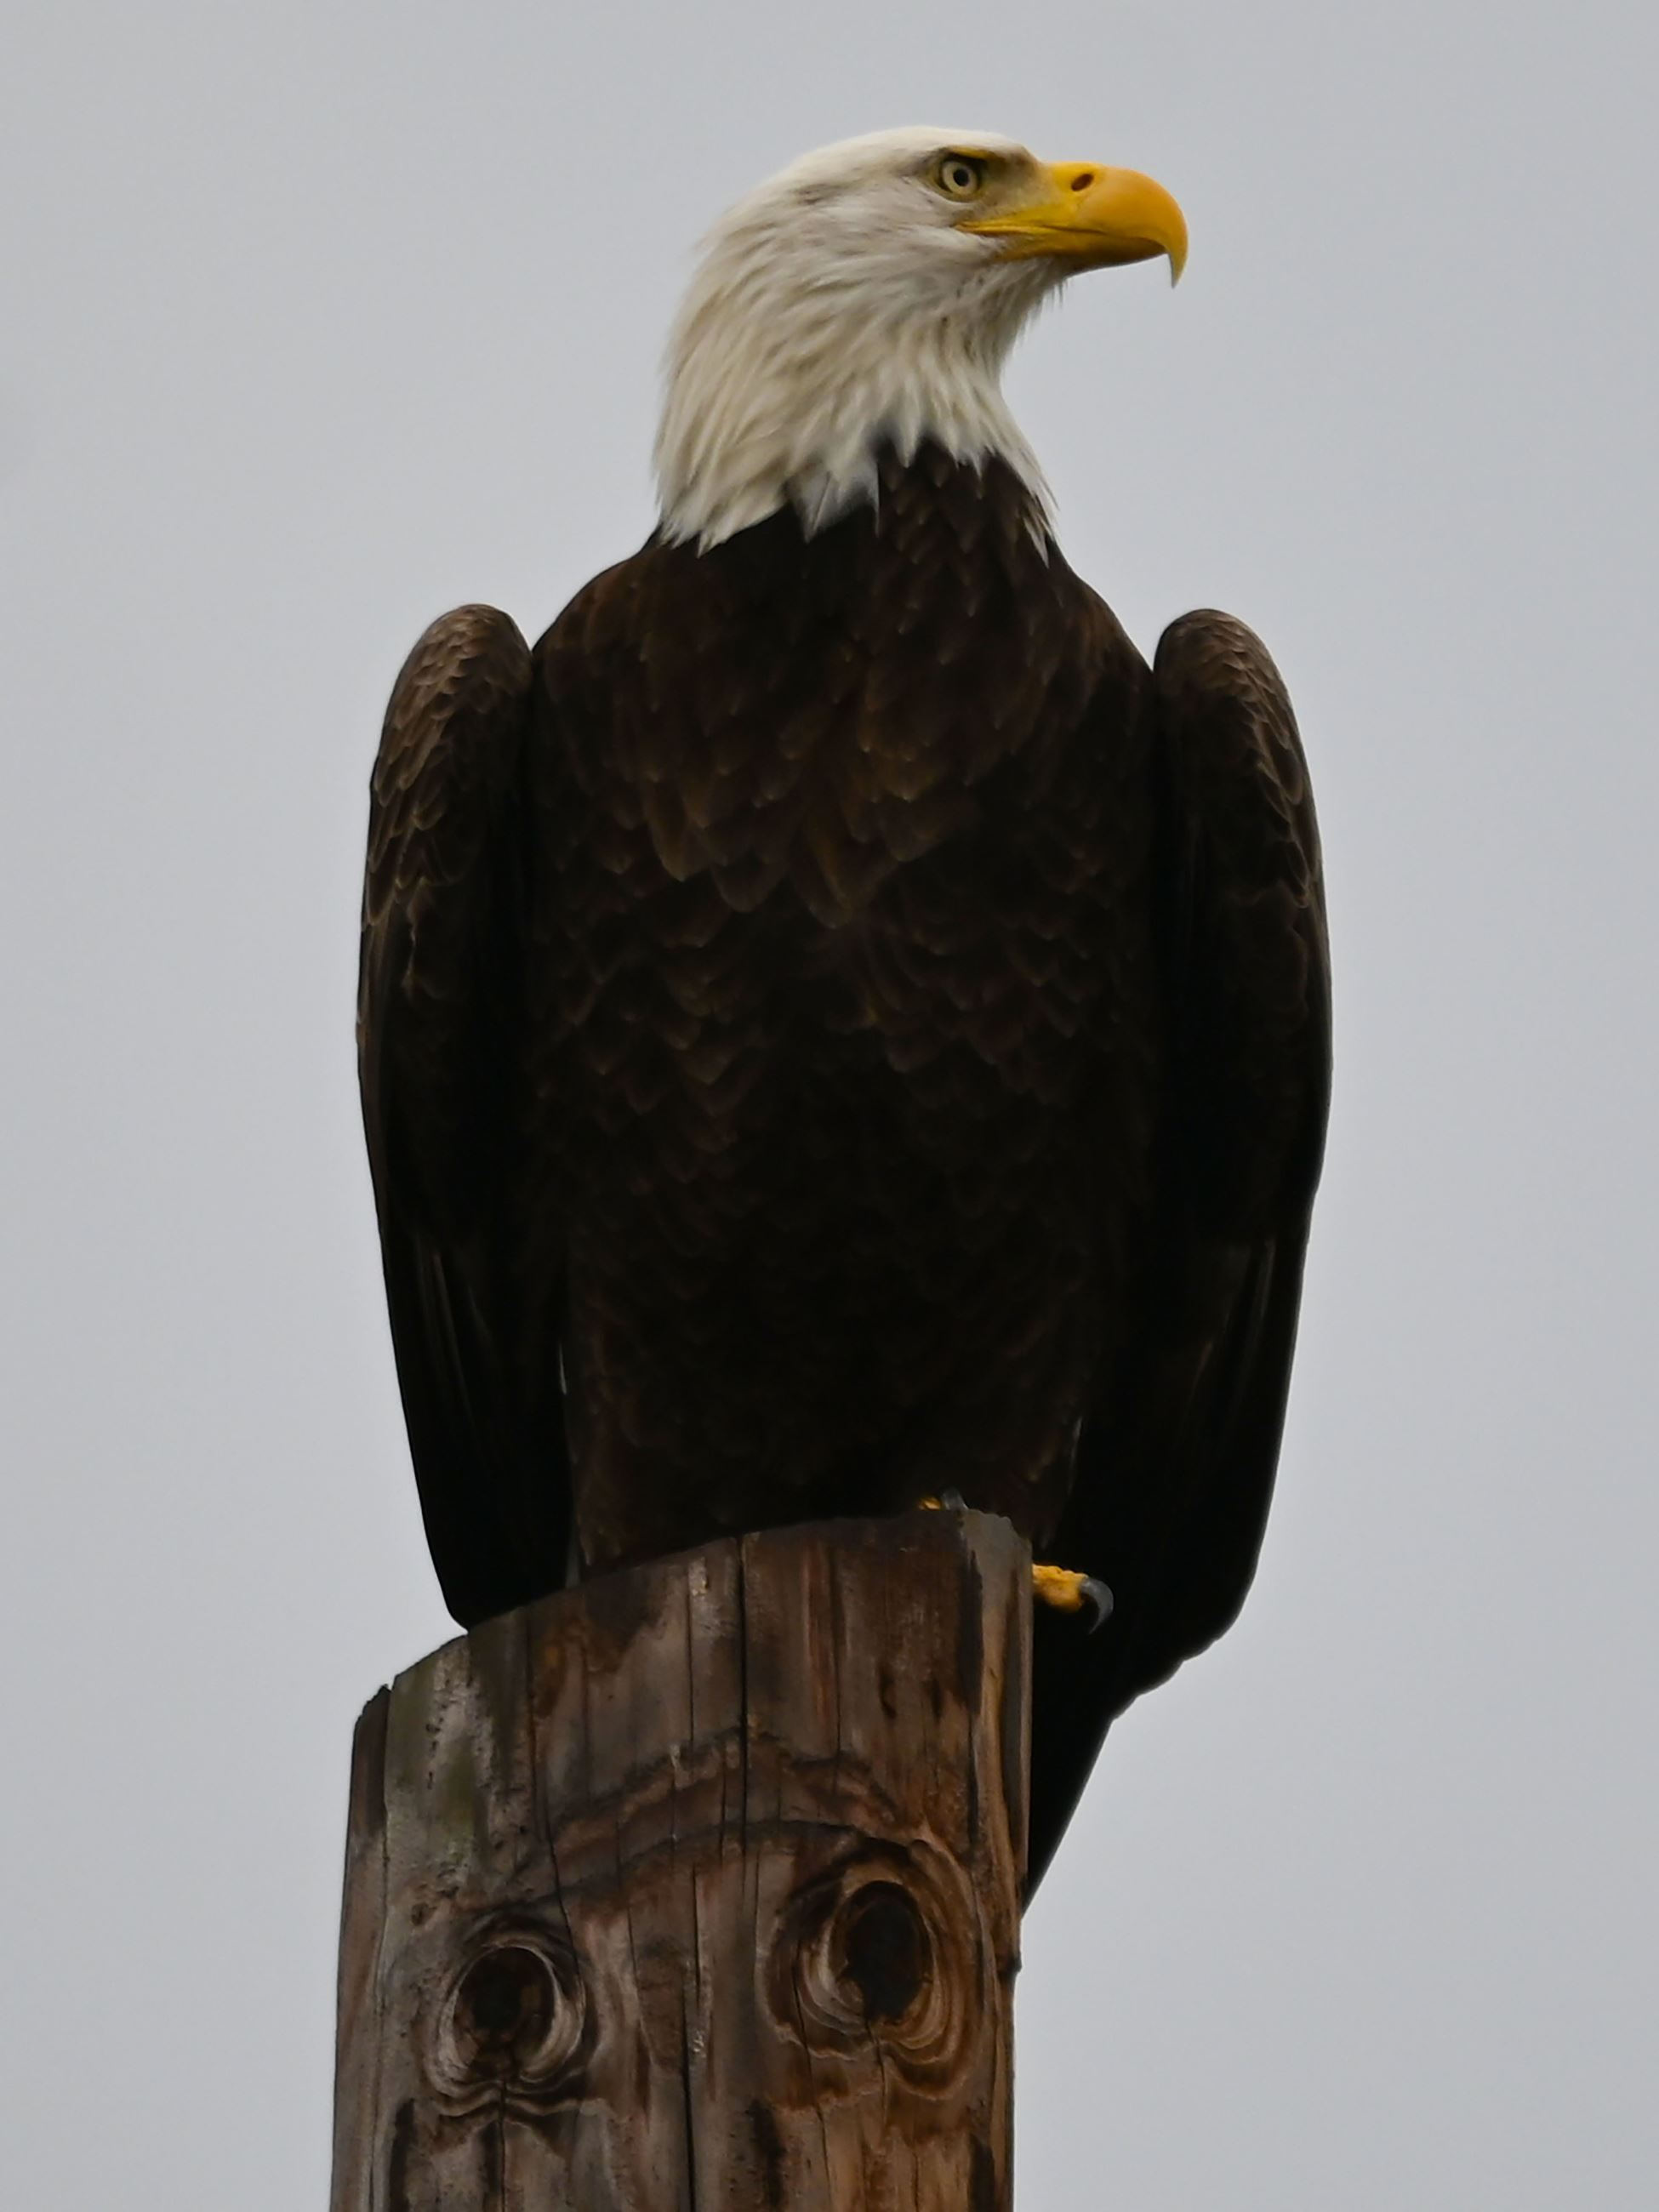 bald eagle standing on a post